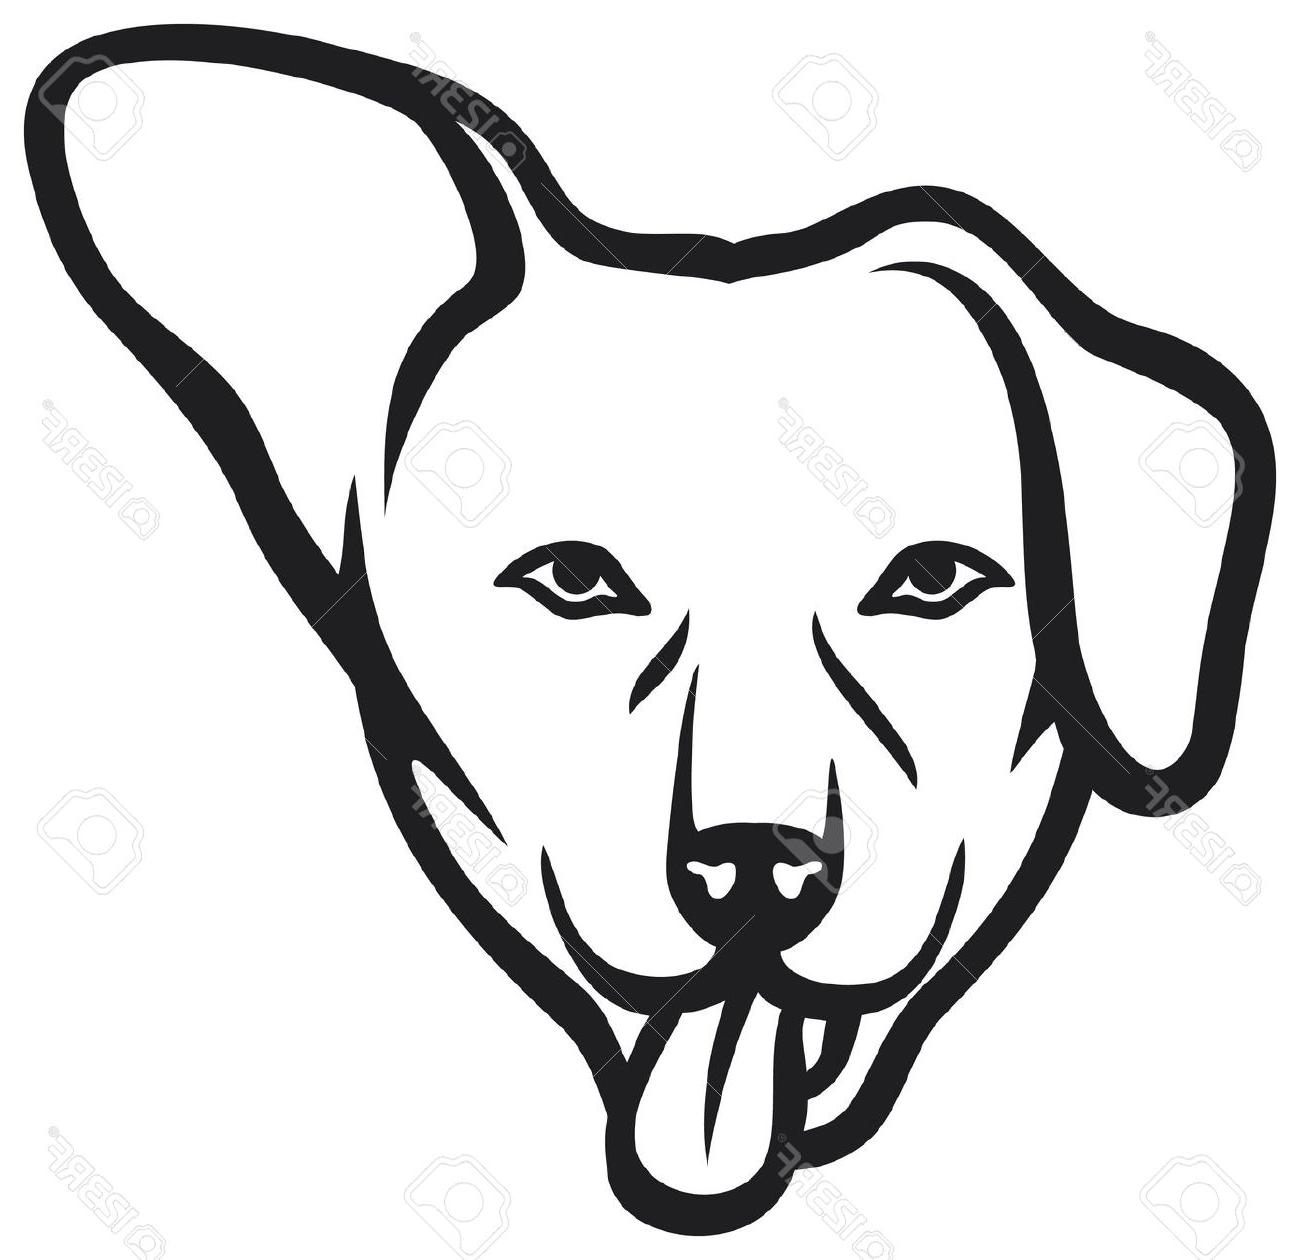 1300x1260 Top Dog Face Clip Art Vector Drawing Free Vector Art, Images